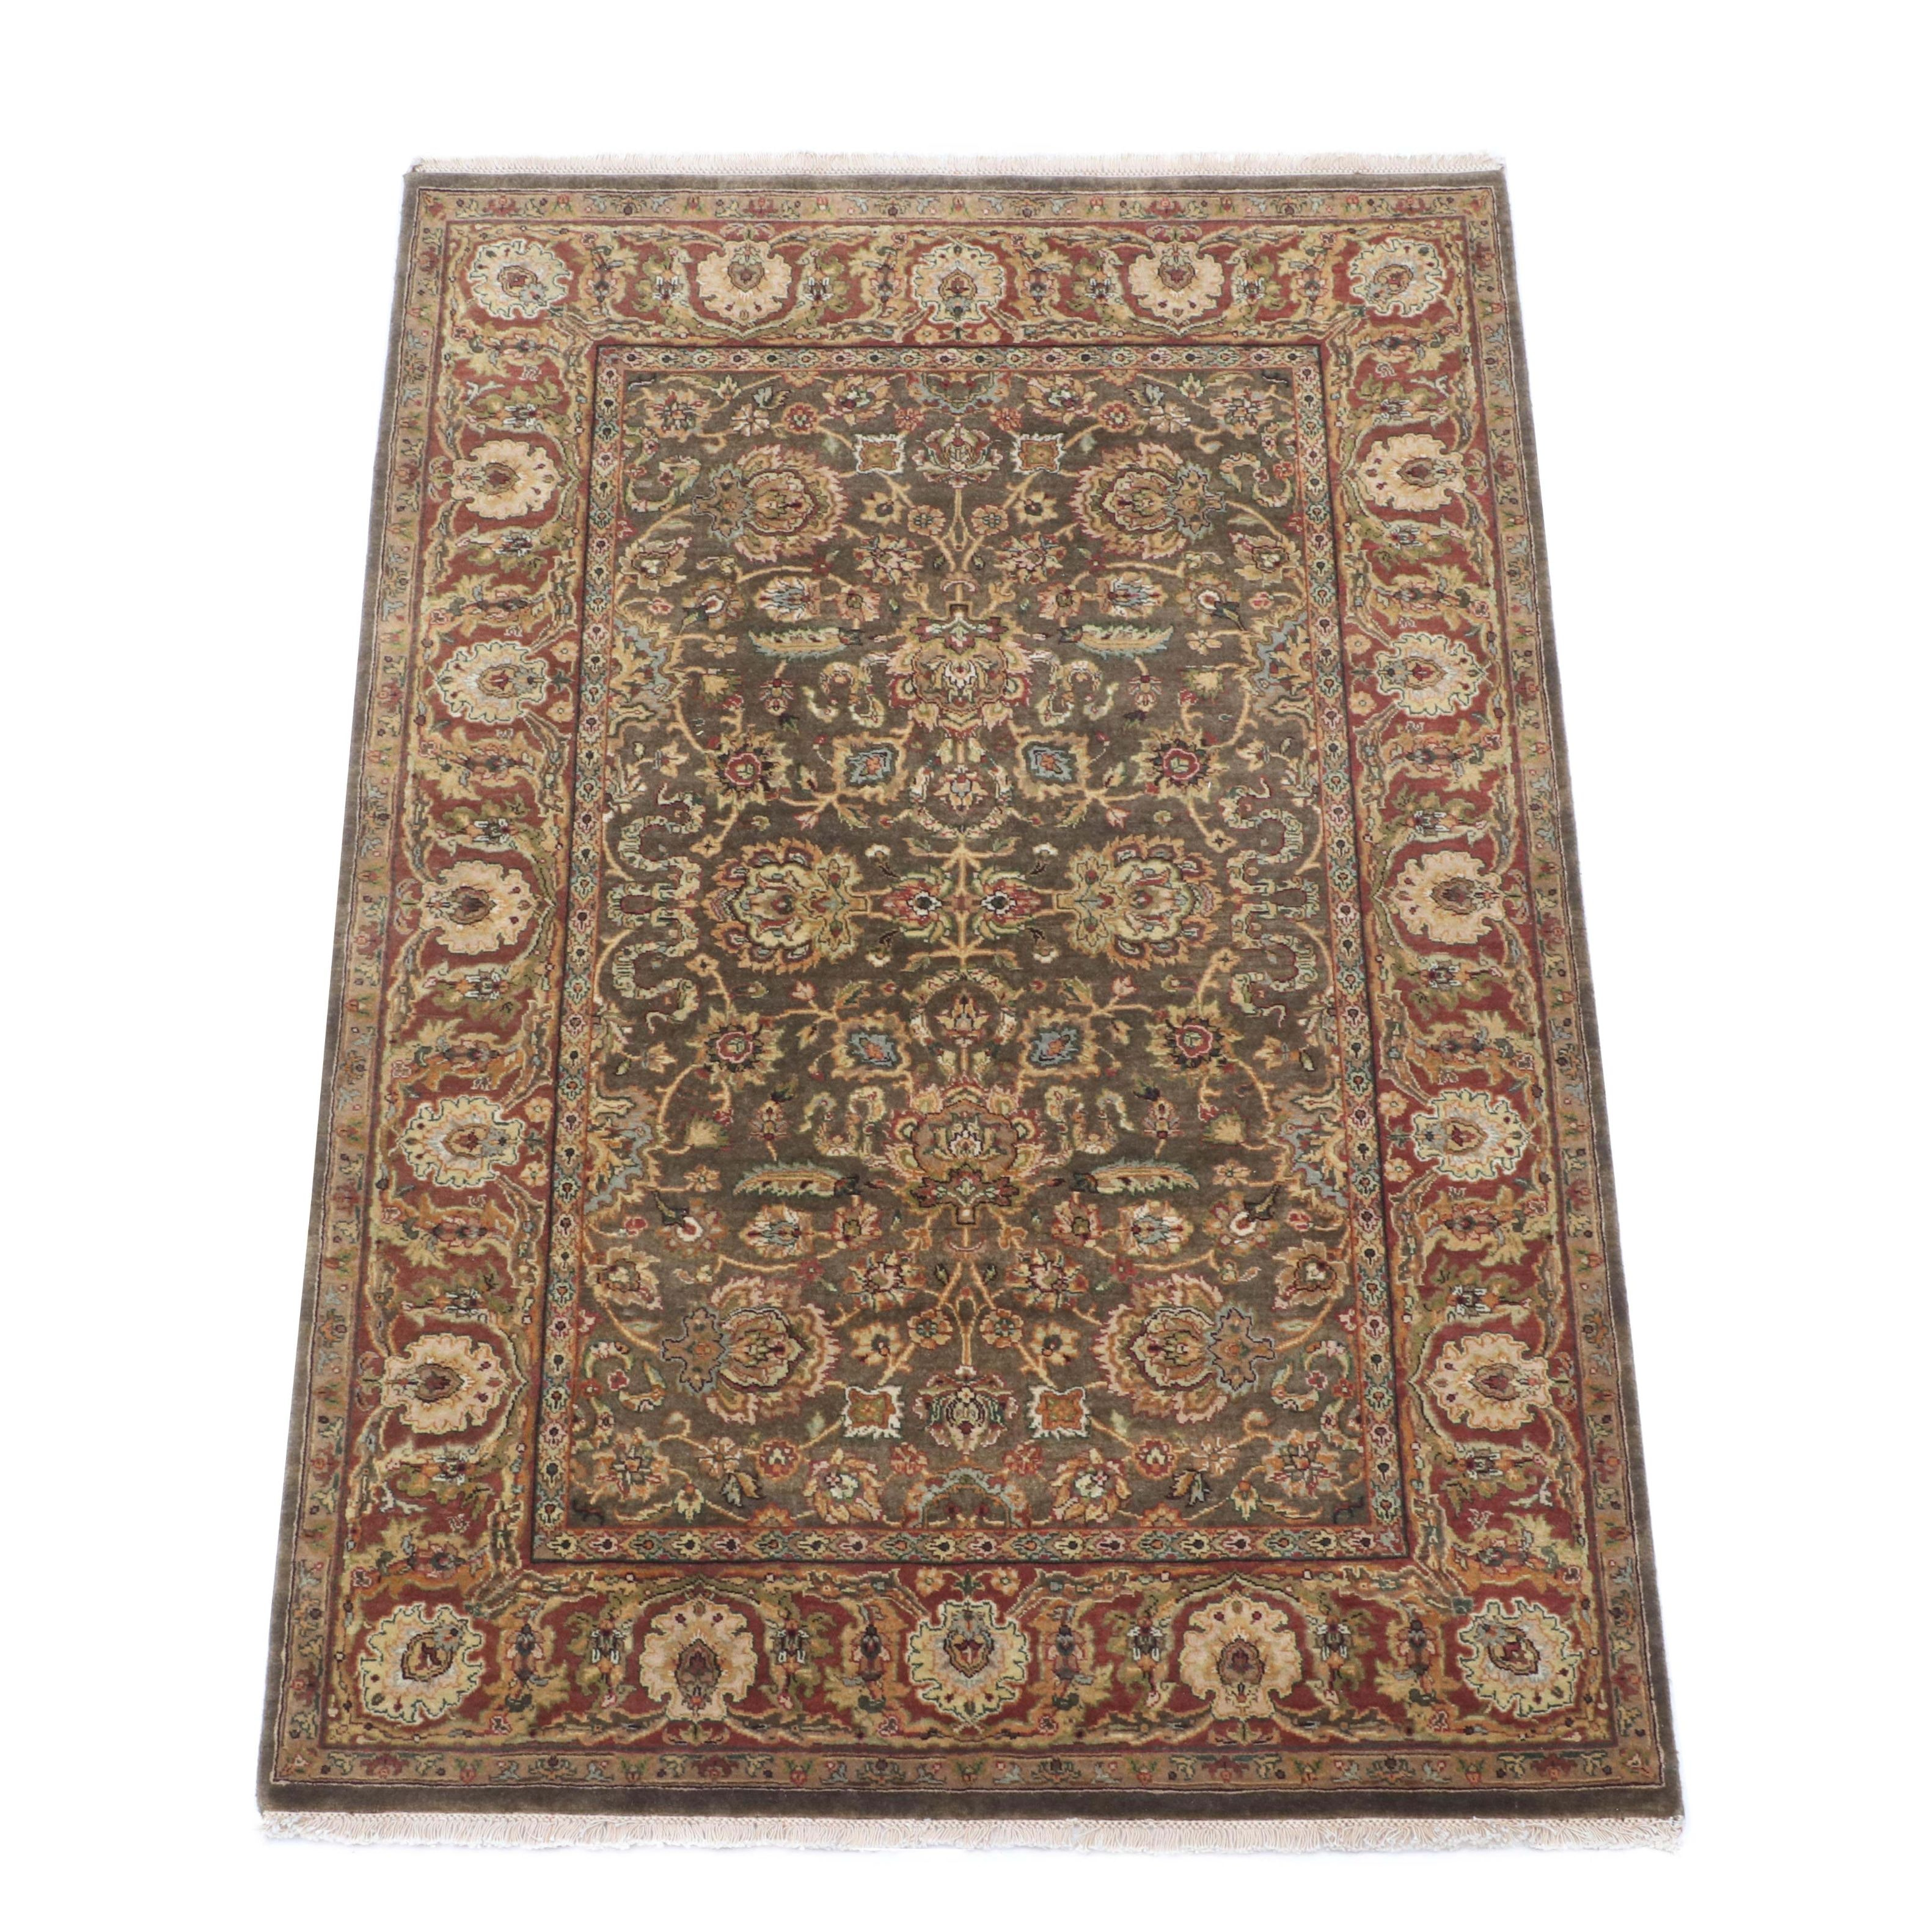 Hand-Knotted Indo-Persian Area Rug